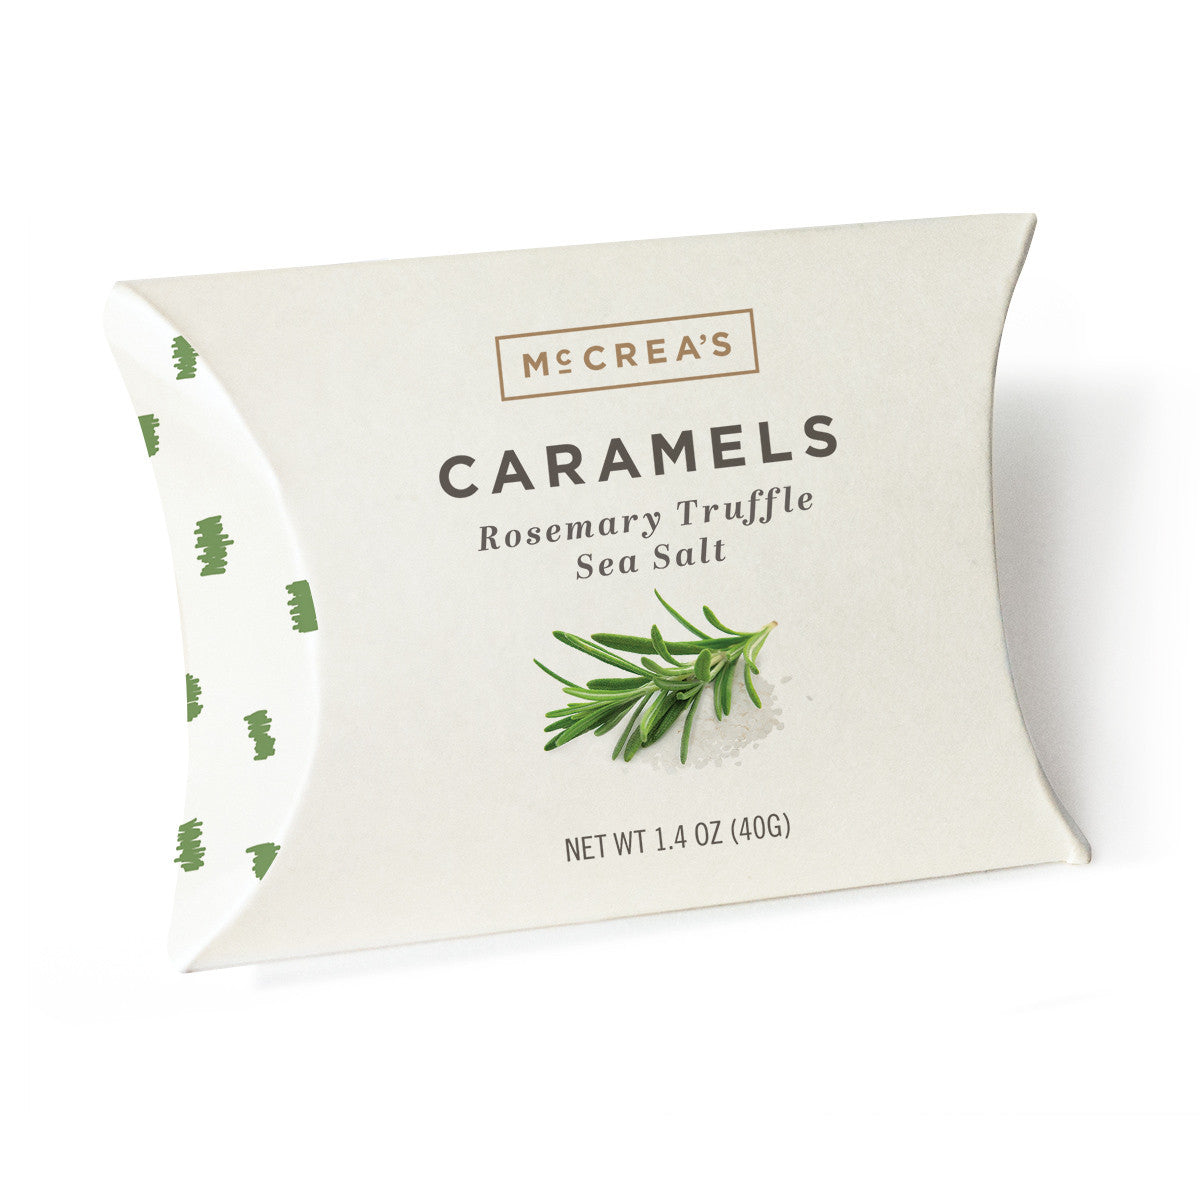 rosemary truffle sea salt caramel 1-4-oz-pillow-box